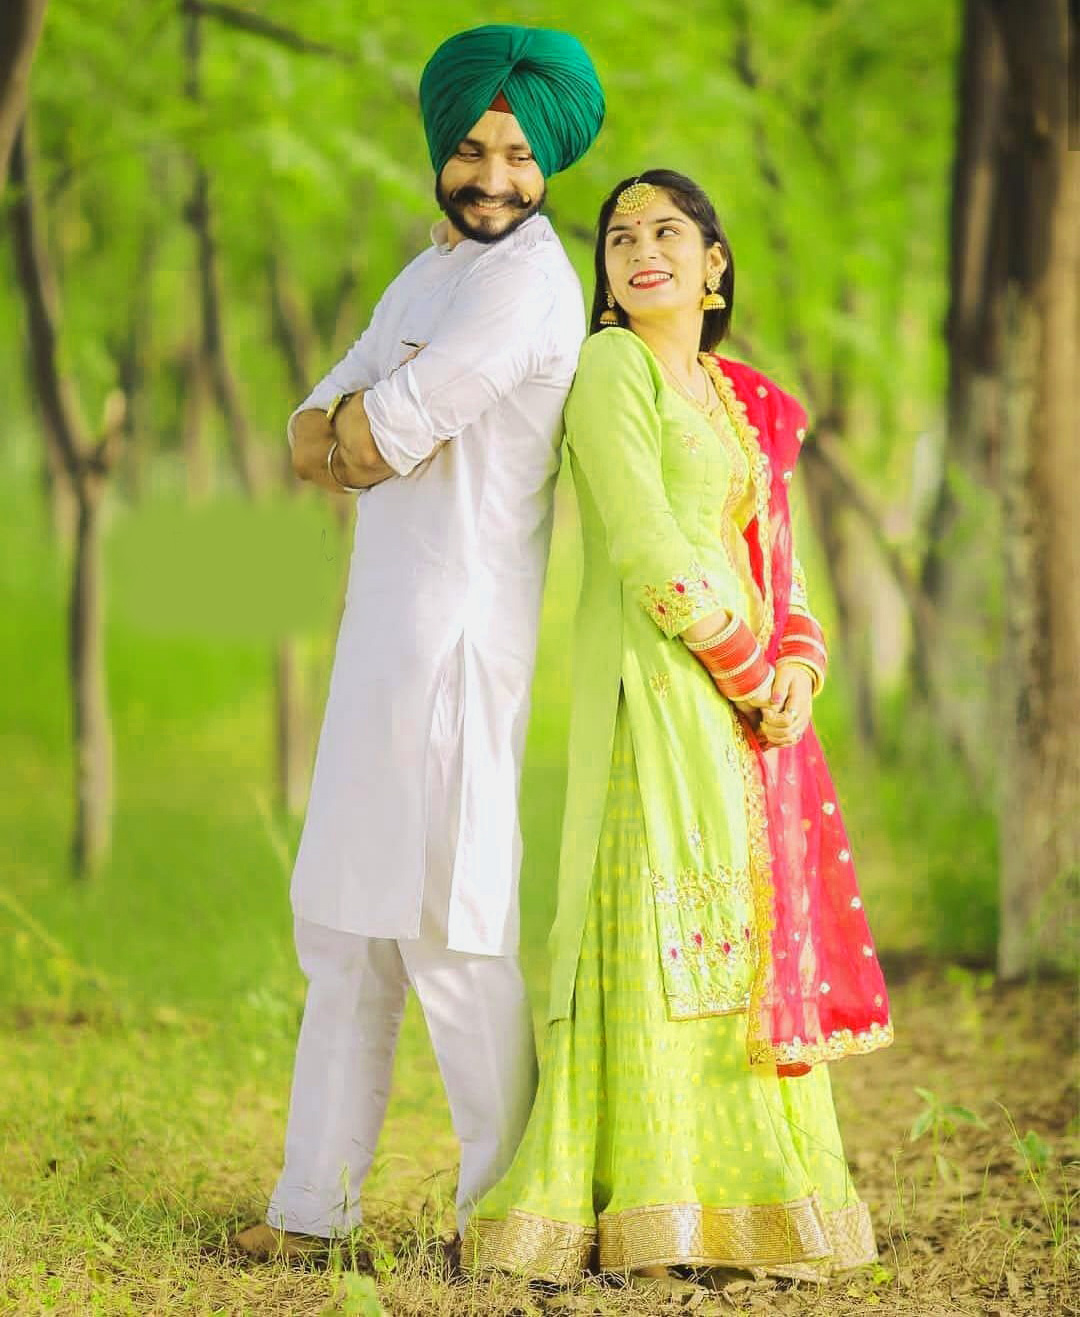 DESI PUNJABI LOVE COUPLE IMAGES PHOTO PICS FREE HD